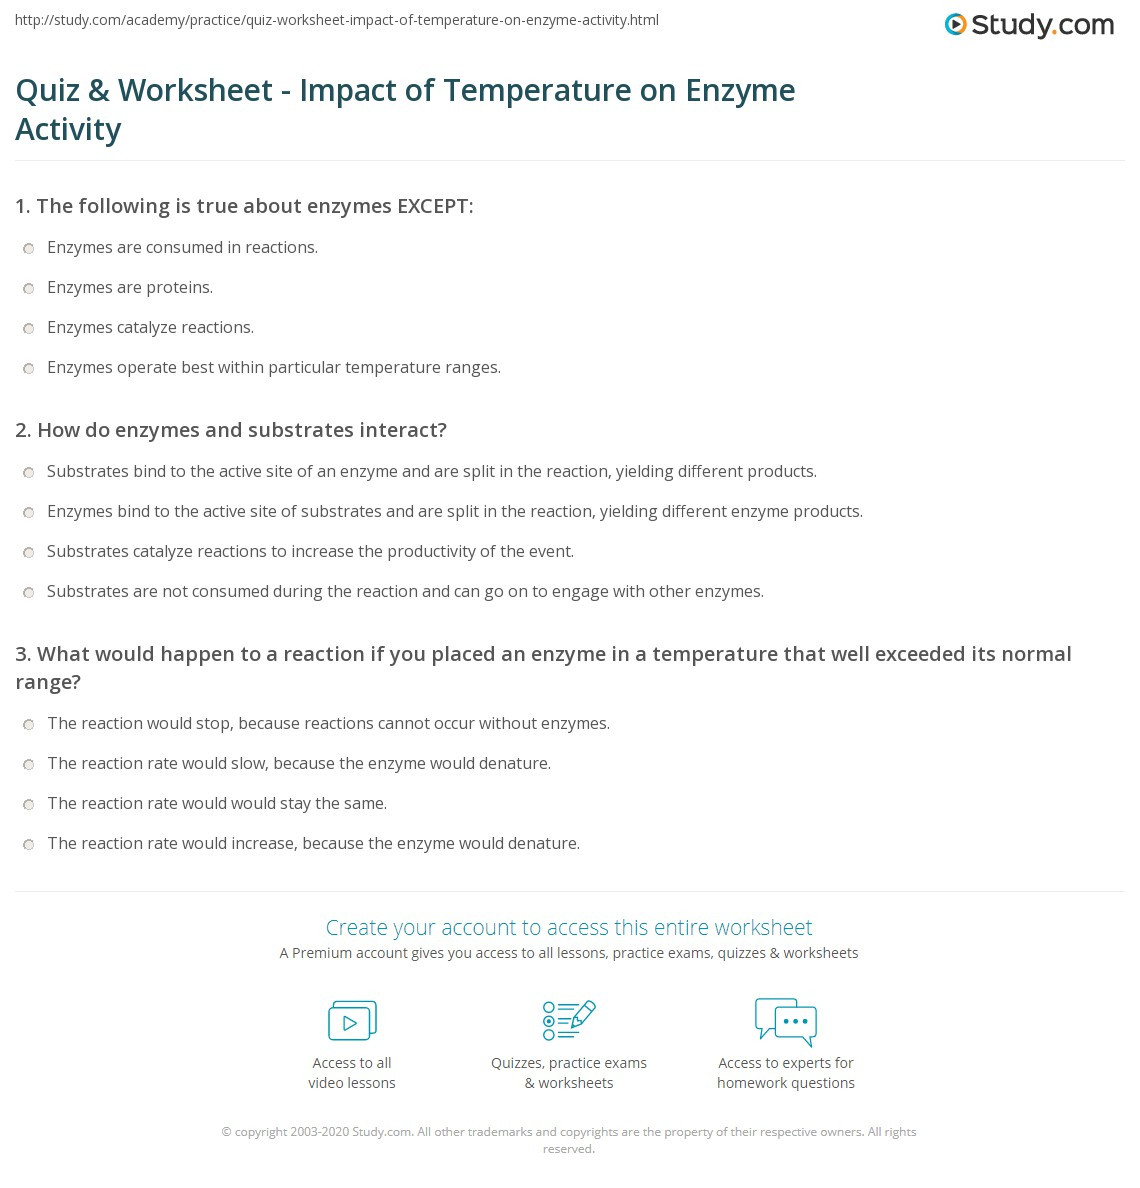 Enzyme Worksheet High School Biology Quiz & Worksheet Impact Of Temperature On Enzyme Activity